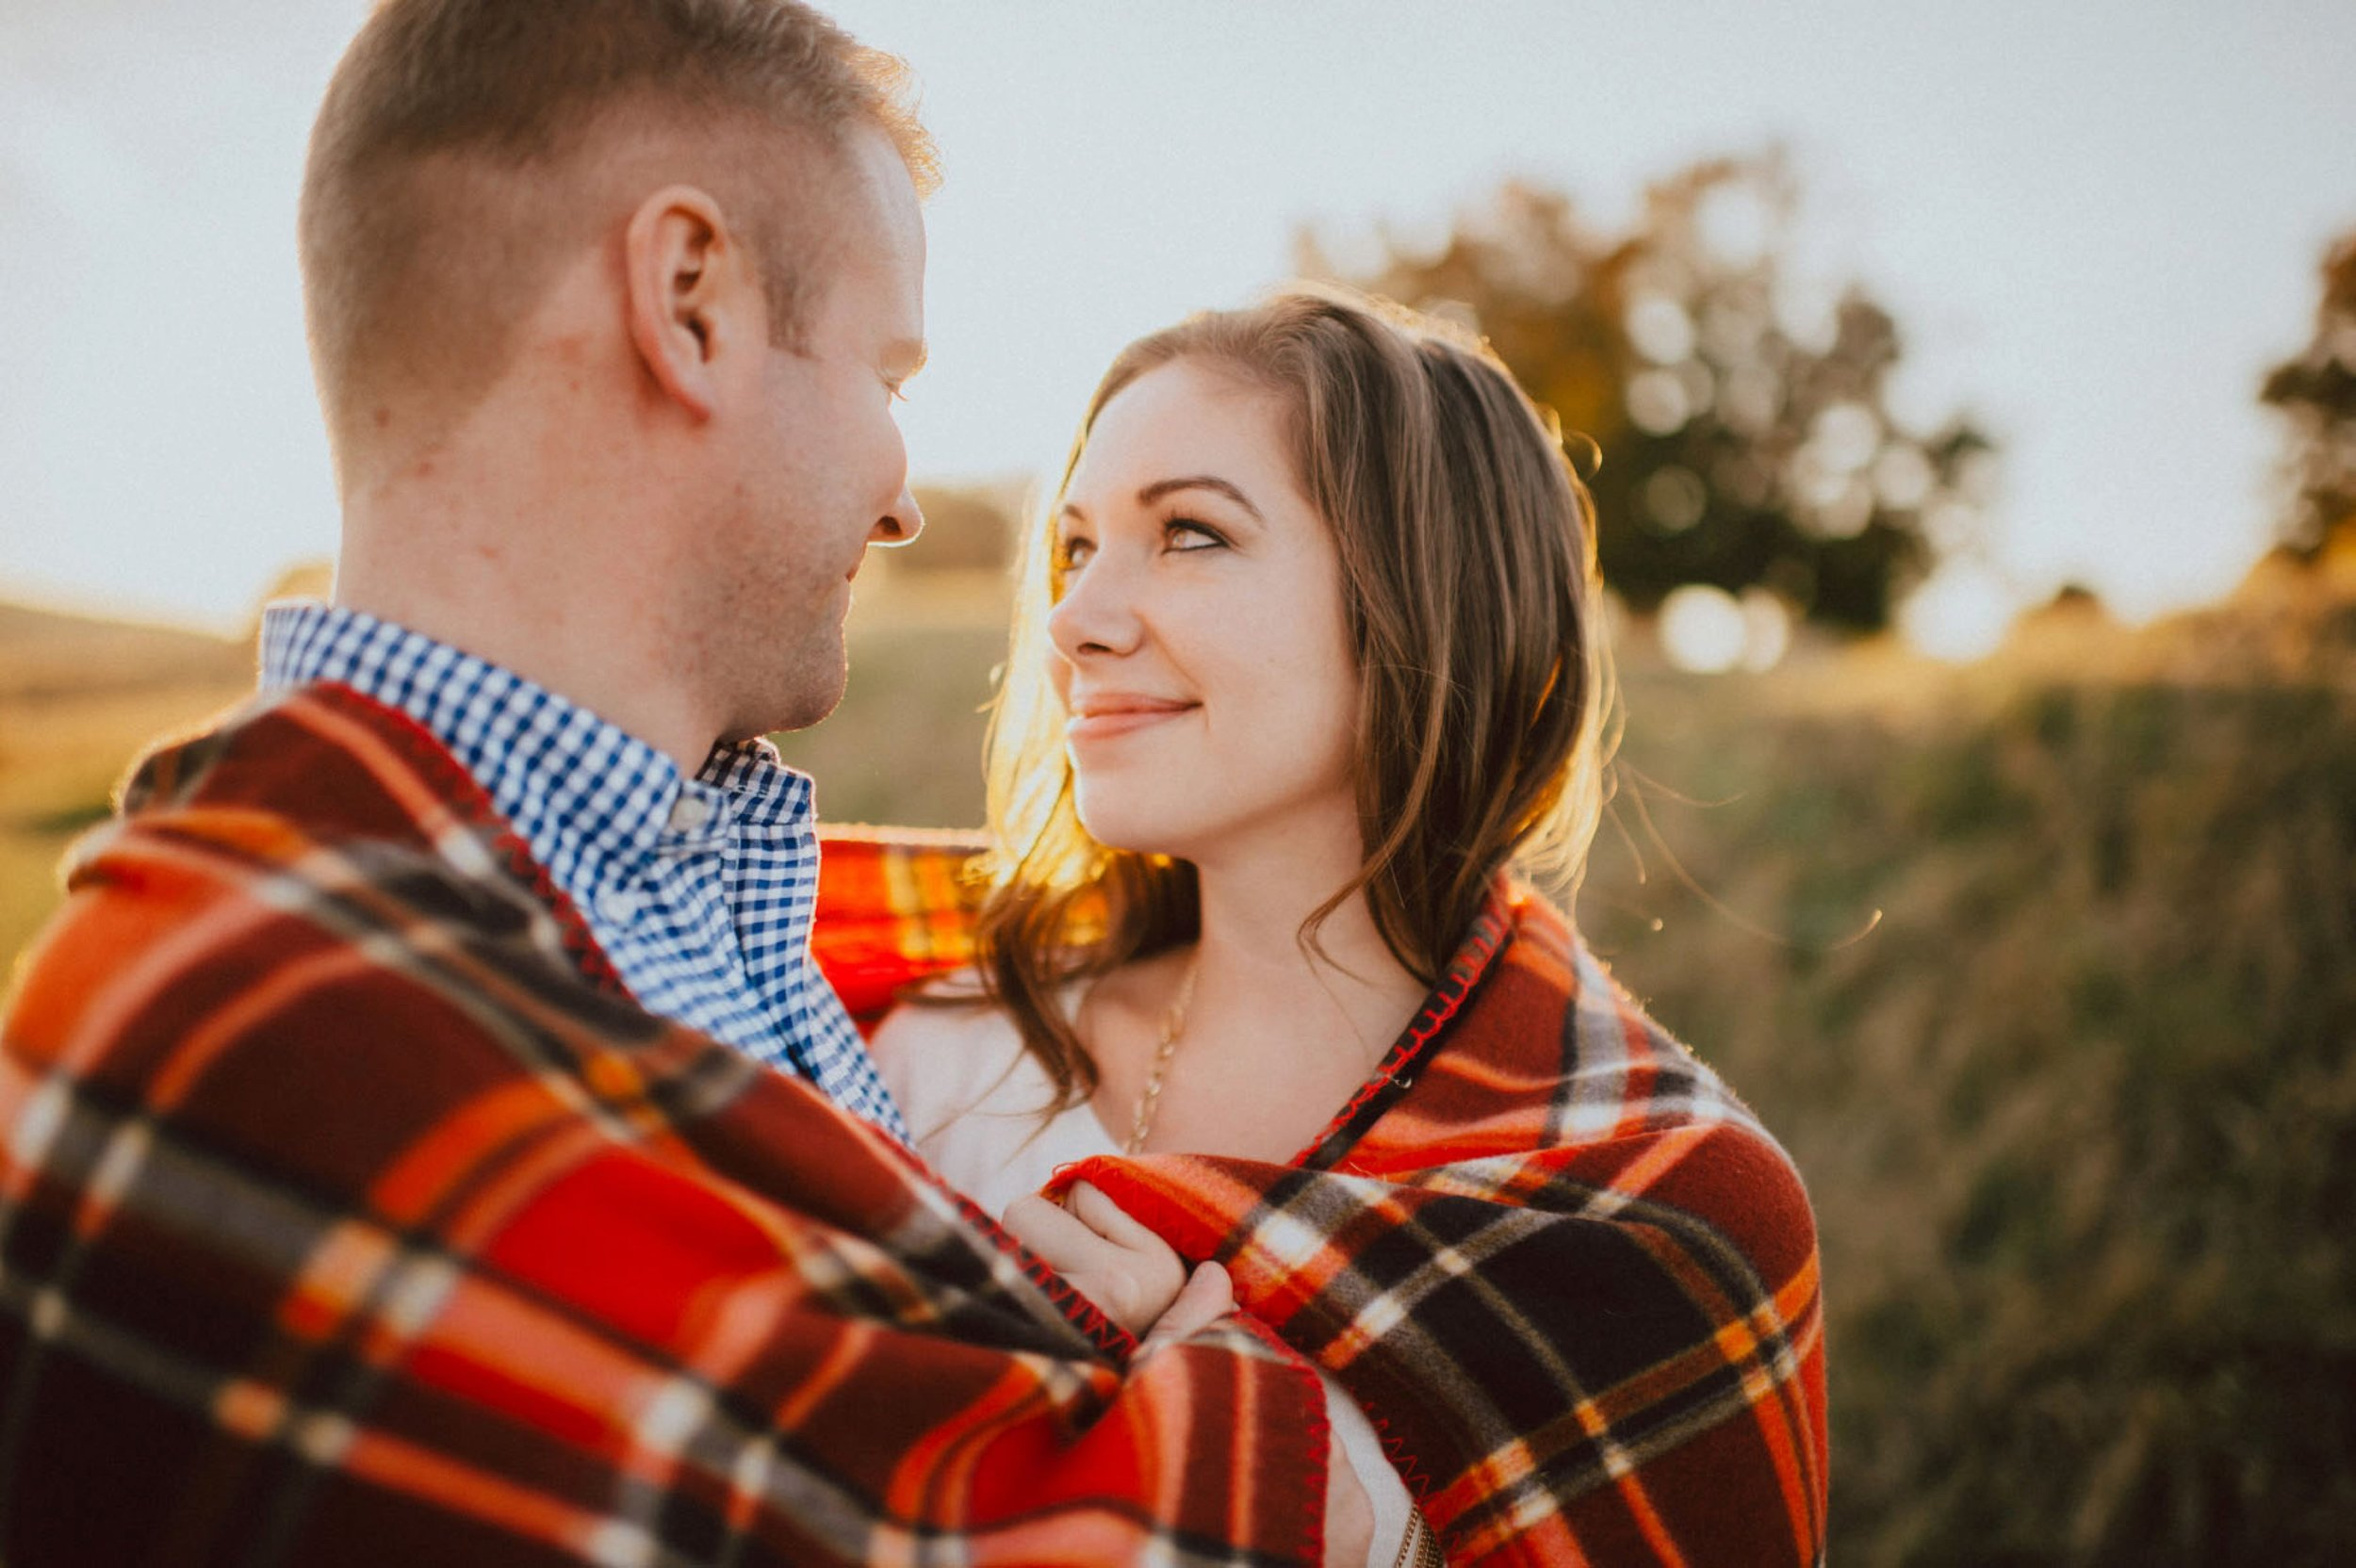 valley-forge-park-engagement-session-12.jpg